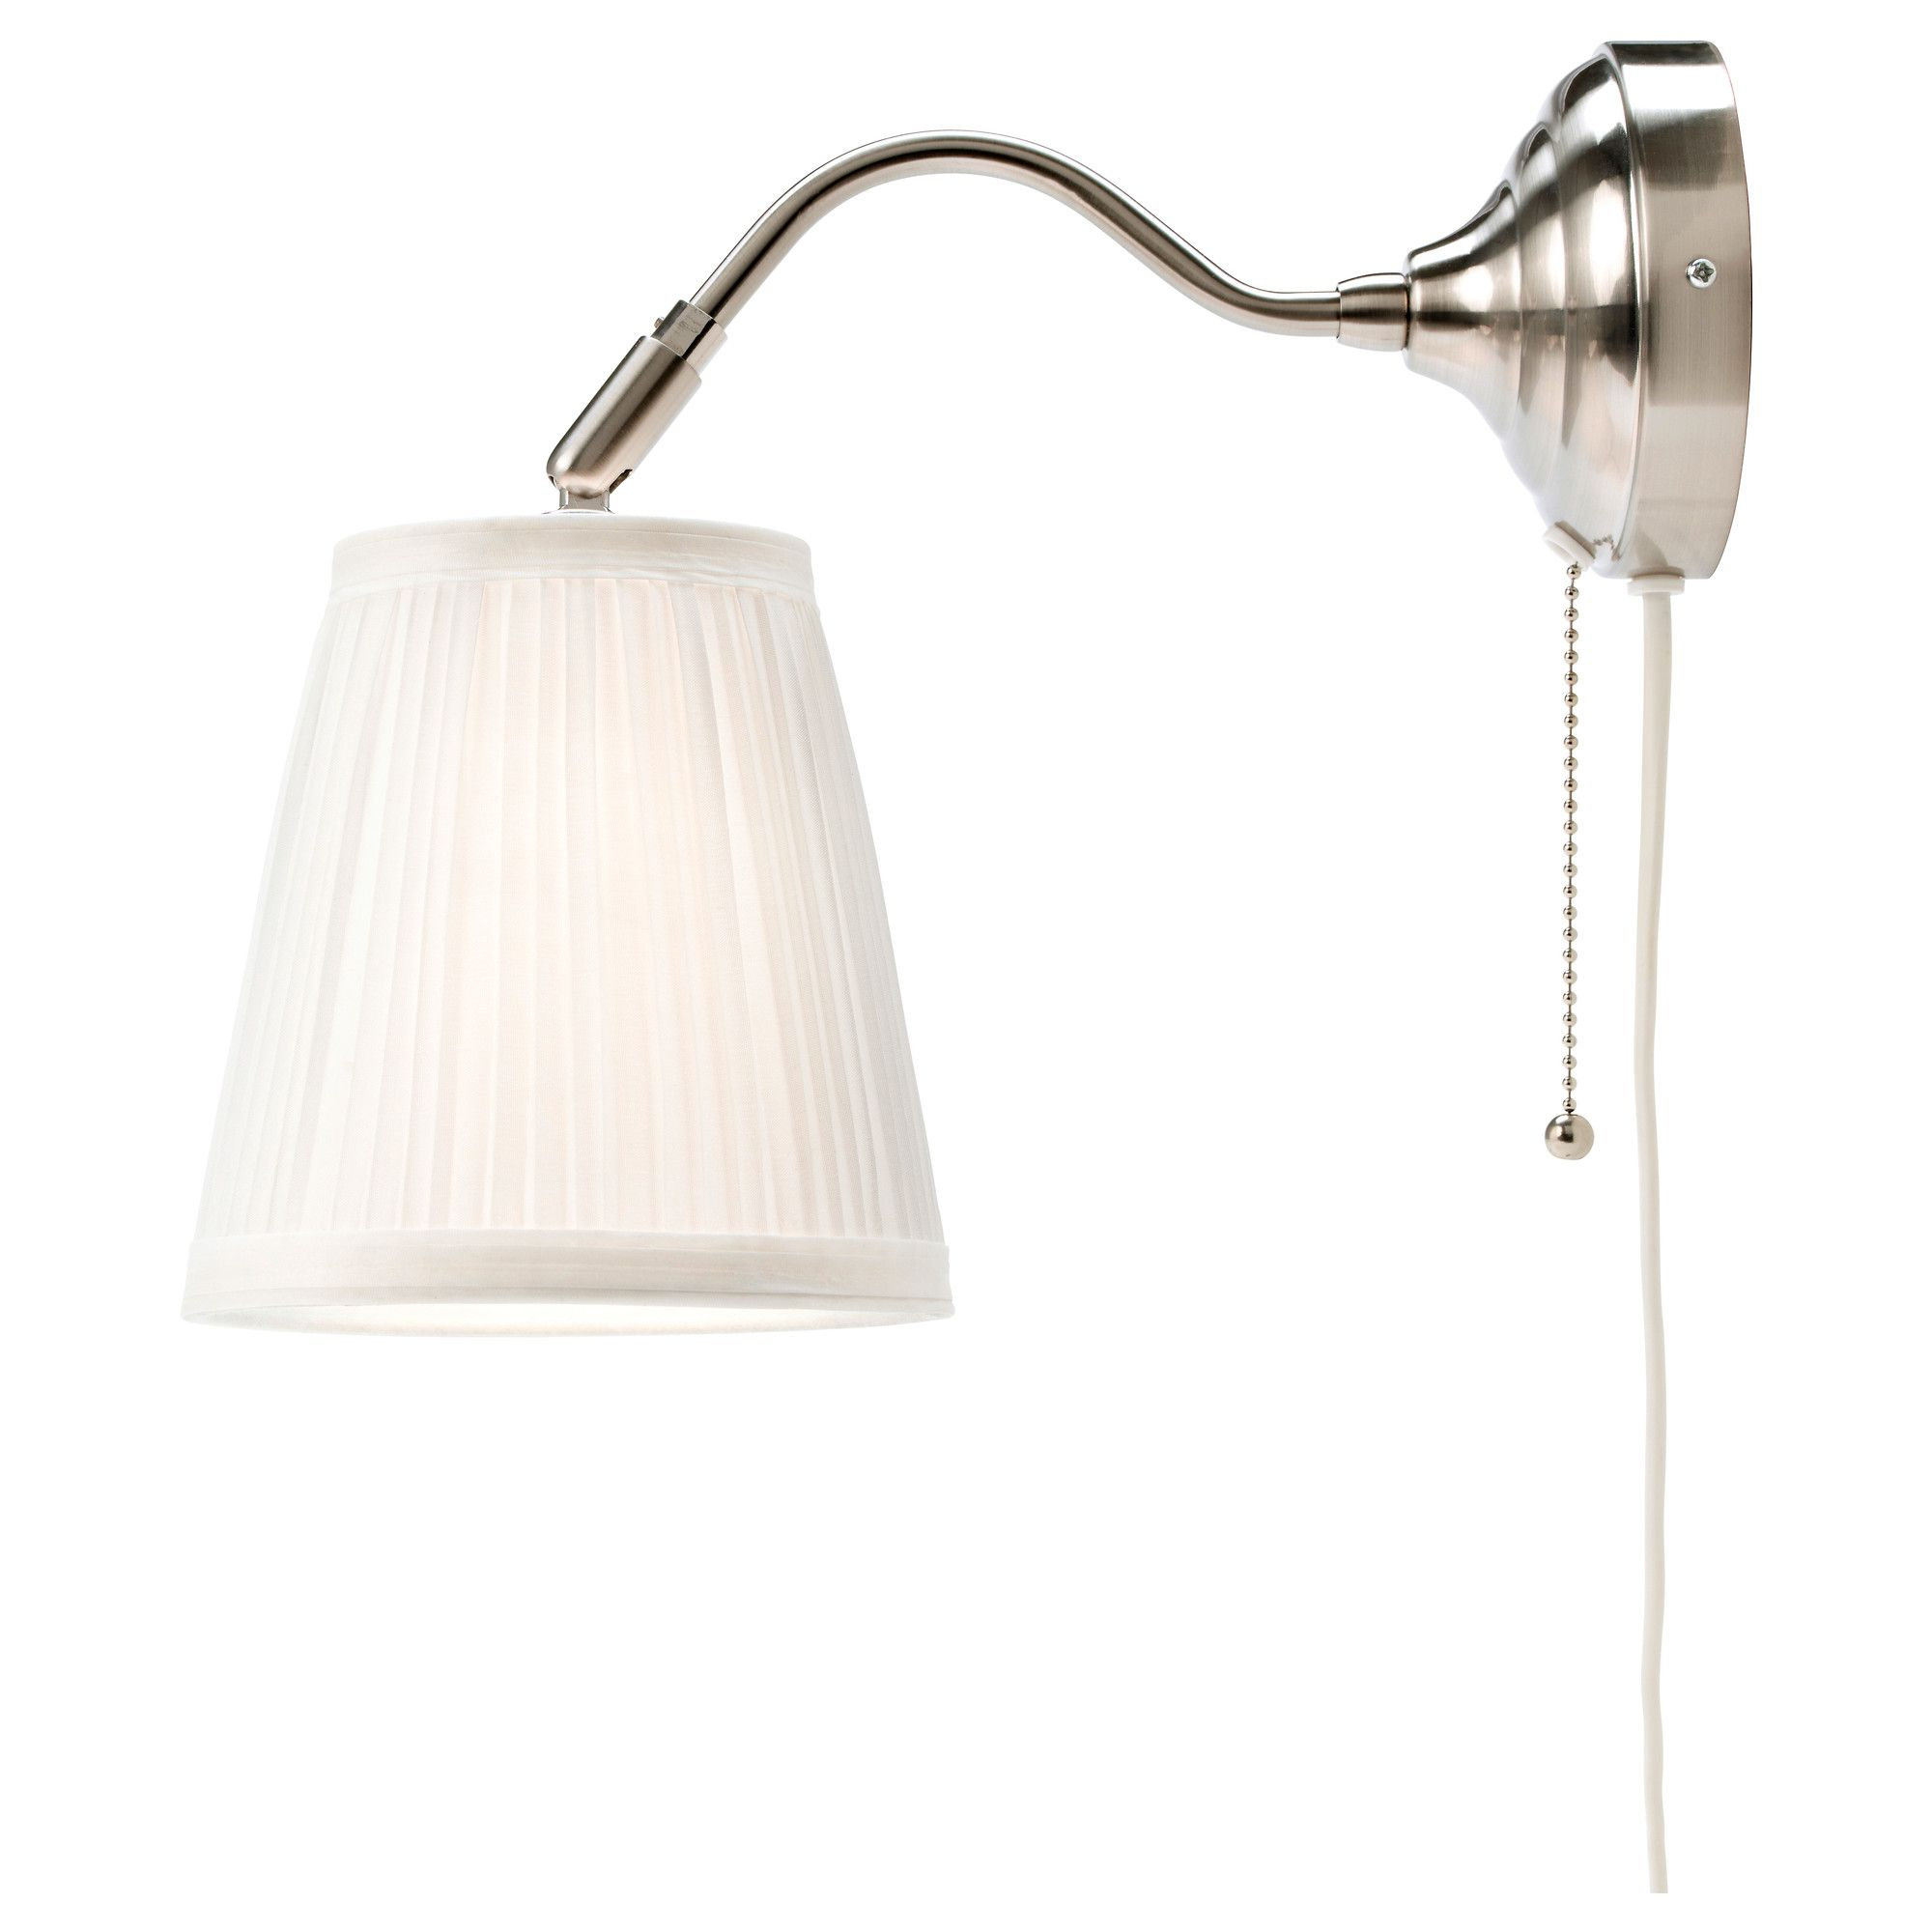 IKEA ÅRSTID Wall Lamp Nickel Plated/white You Can Create A Soft, Cosy  Atmosphere In Your Home With A Textile Shade That Spreads A Diffused And  Decorative.